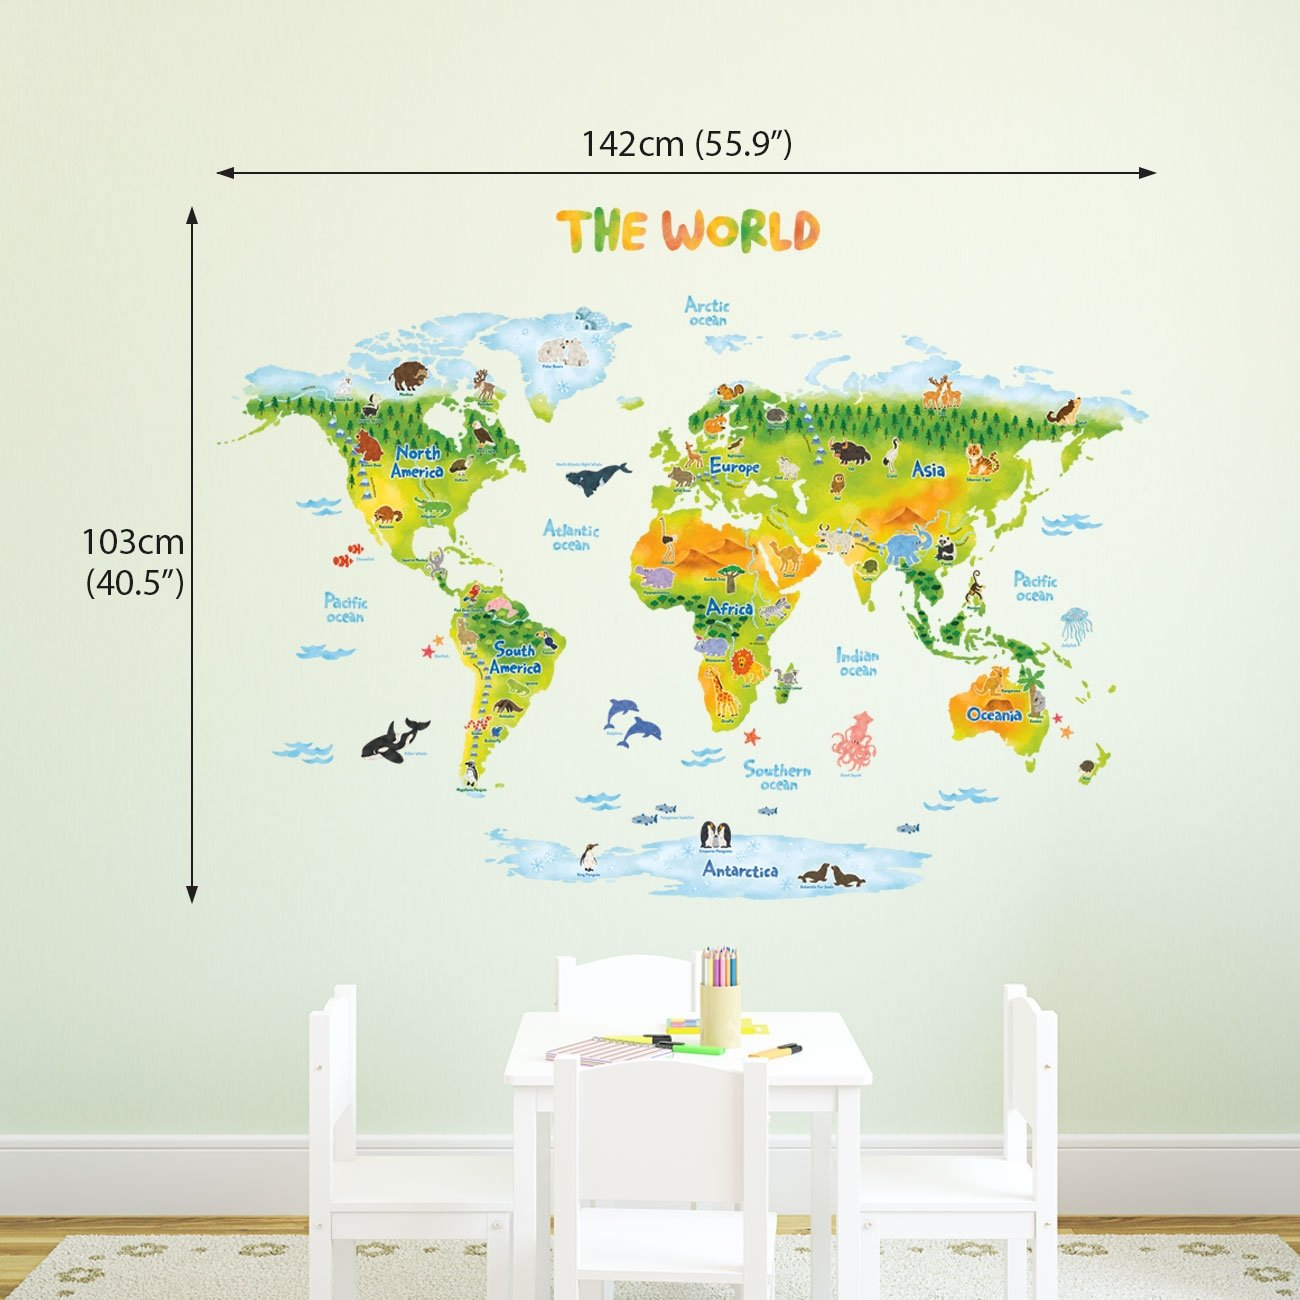 DECOWALL DMT-1715S Geological World Map with Animals Kids Wall Stickers Wall Decals Peel and Stick Removable Wall Stickers for Kids Nursery Bedroom Living Room Large